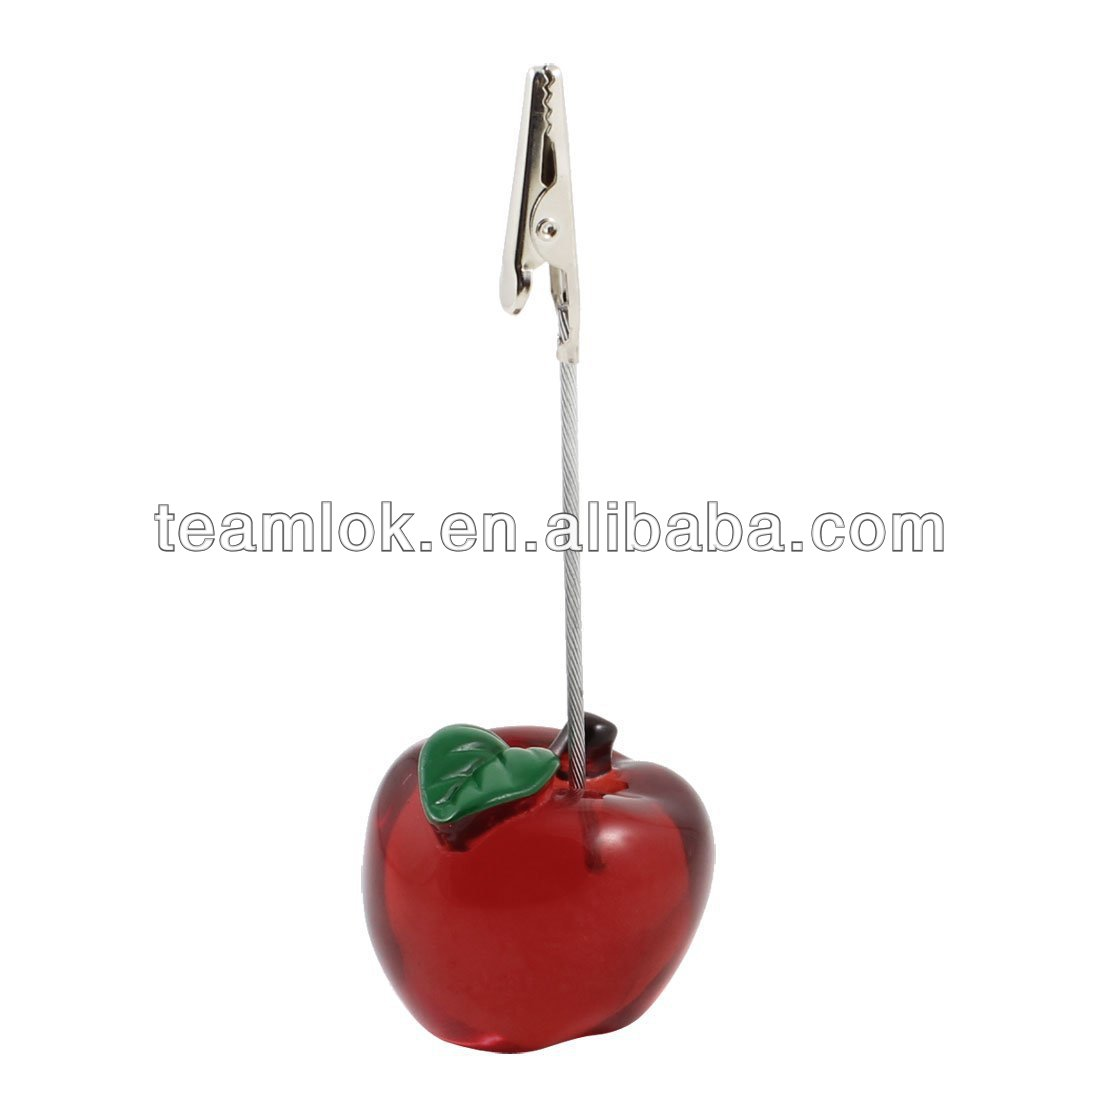 NEW Red Apple Design Name Card Photo Memo Clip Holder